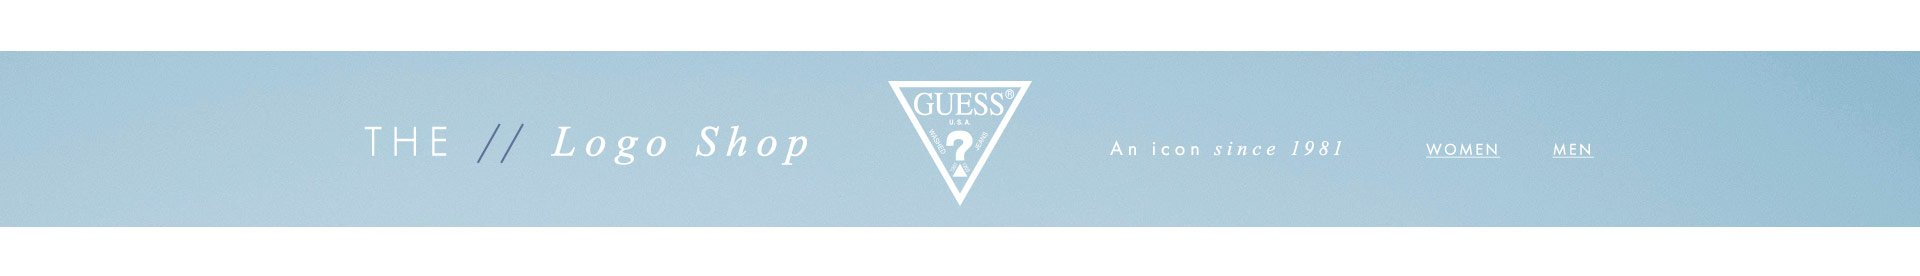 GUESS? Logo shop